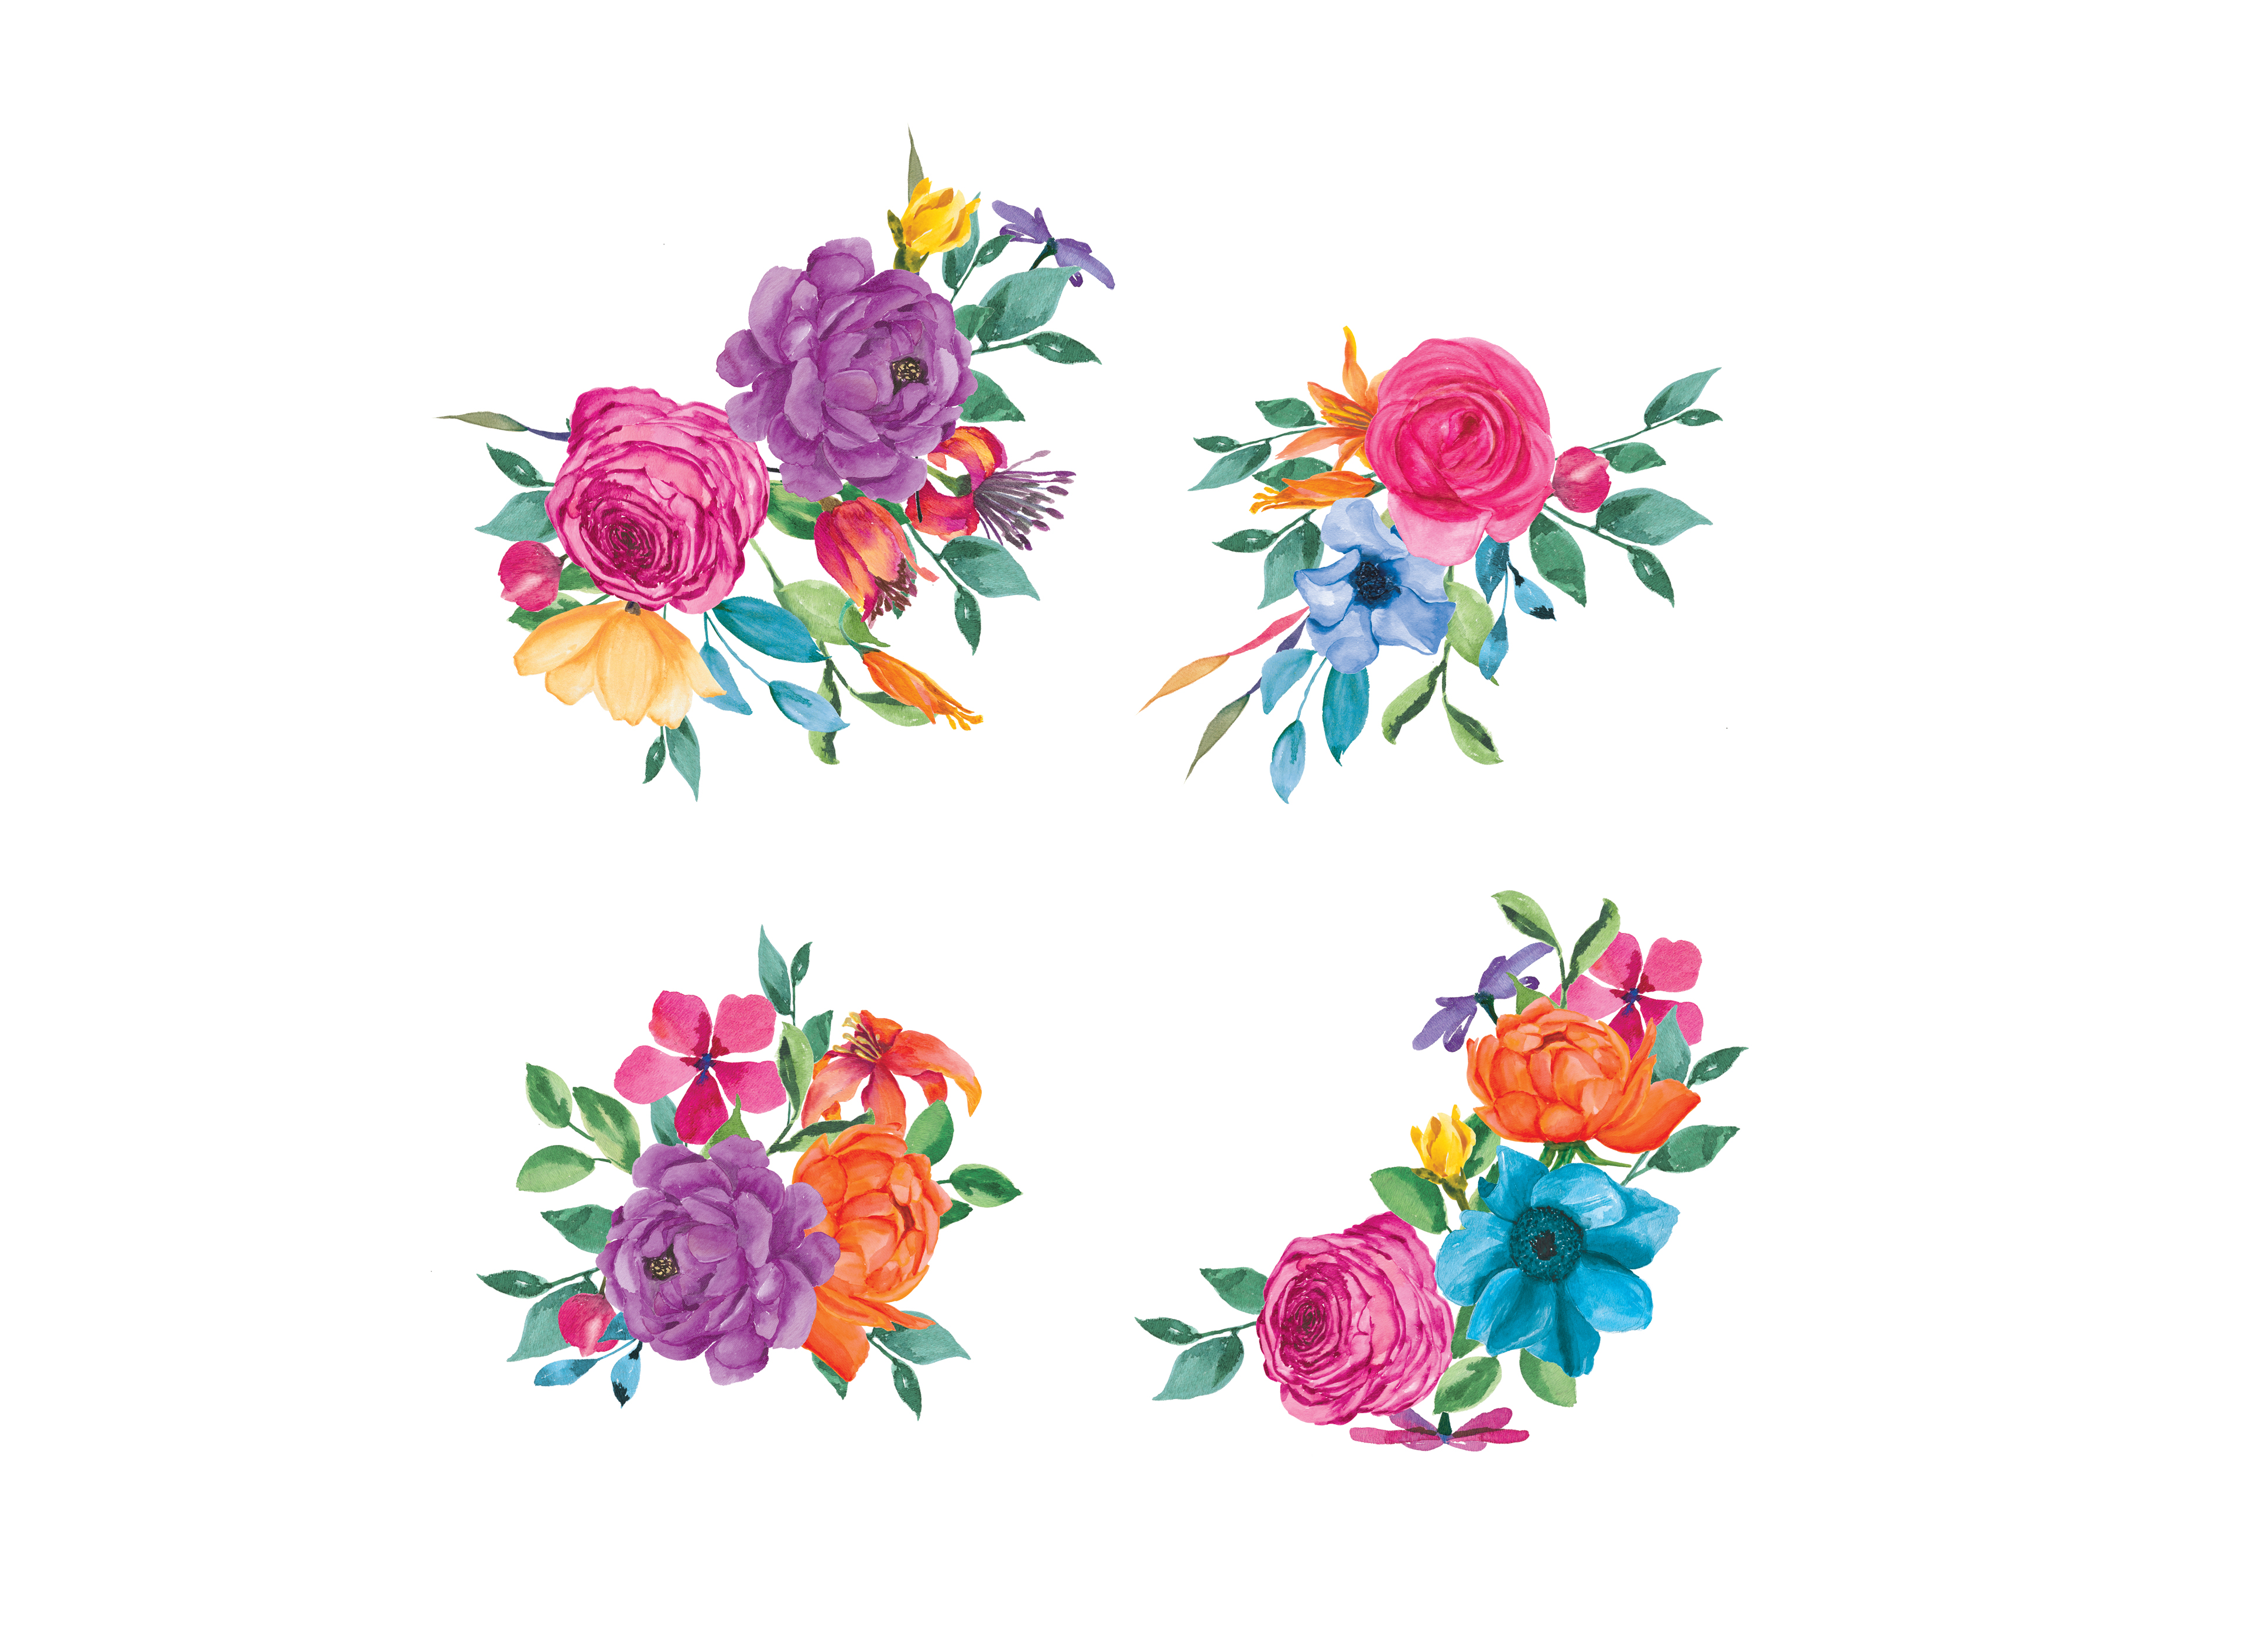 Mexican Flowers Graphic Design